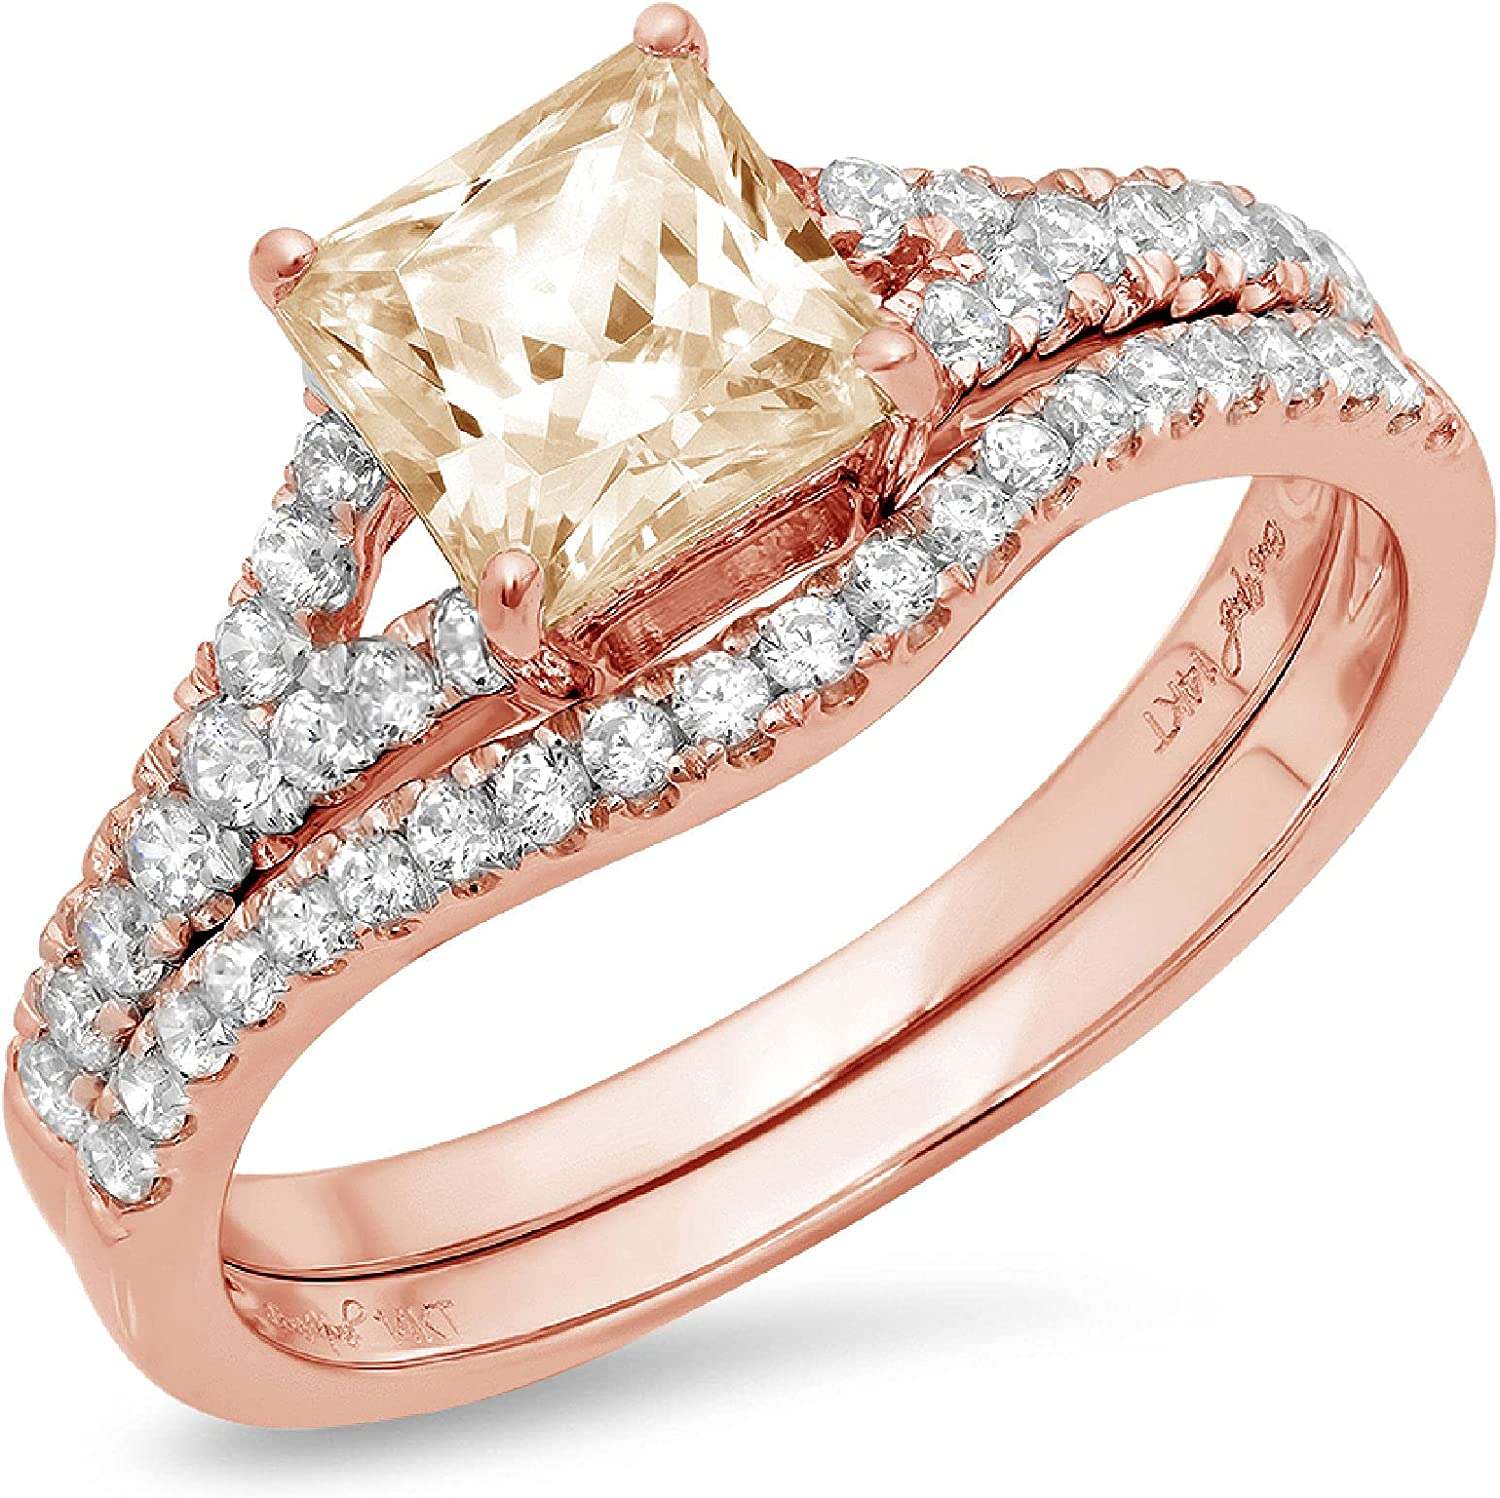 1.76ct Princess Cut Pave Solitaire Accent Ideal VVS1 Yellow Moissanite Engagement Promise Statement Anniversary Bridal Wedding Designer Ring Band set Curved 18K Rose Gold